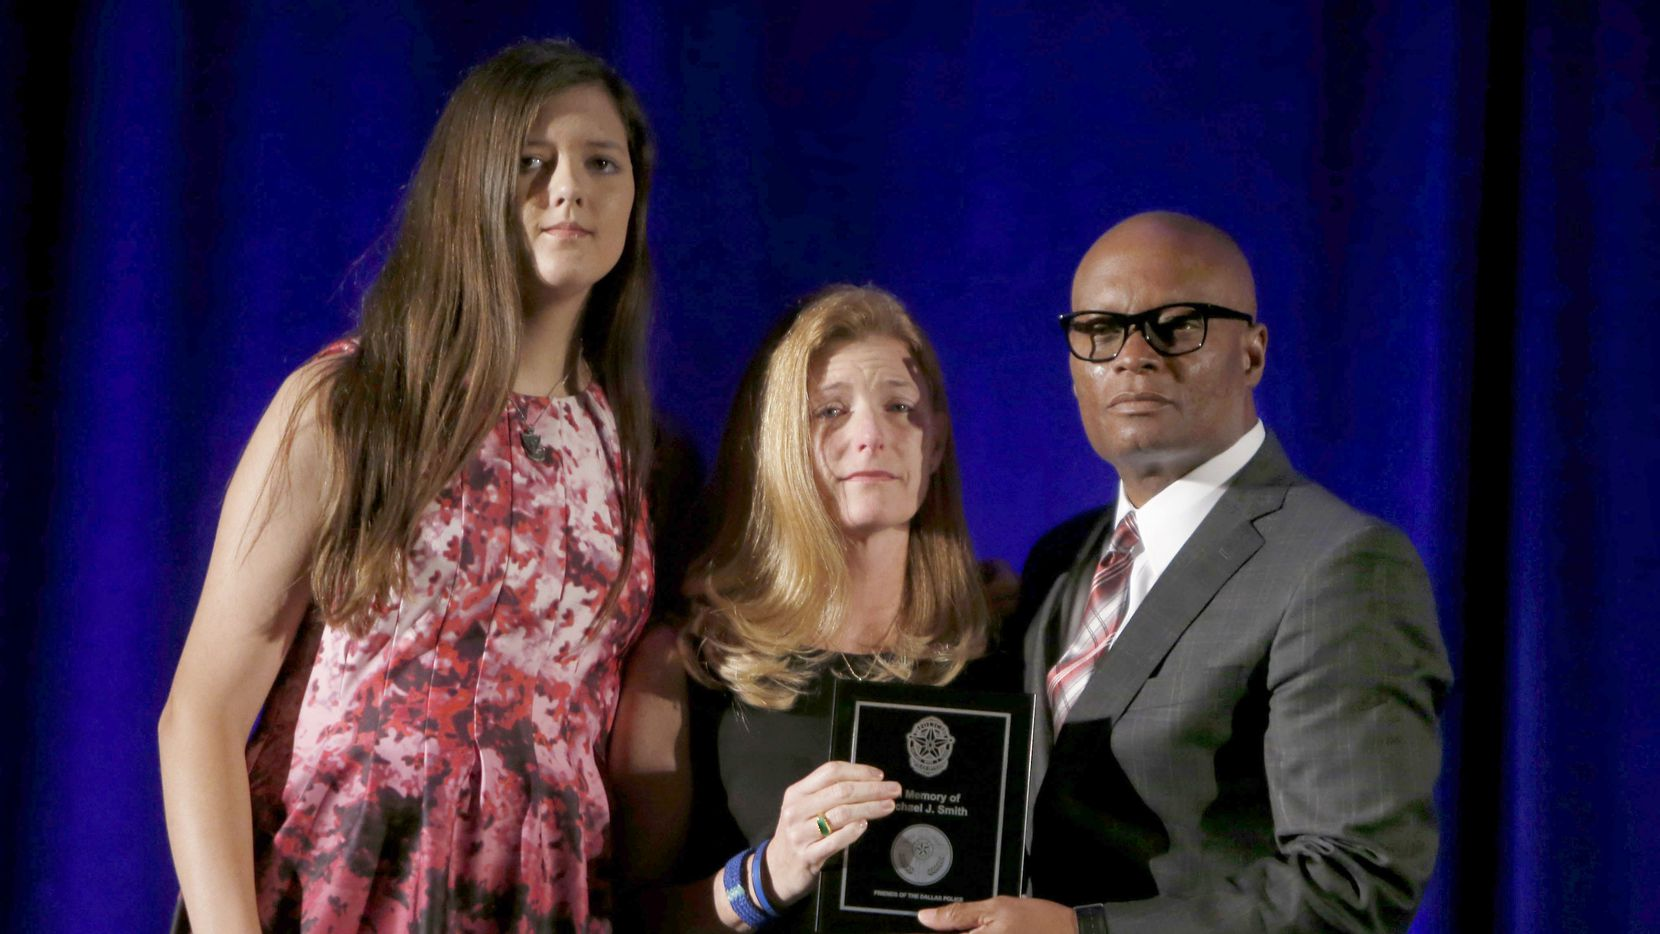 Former Dallas Police Chief David Brown gives Heidi Smith (center) and her daughter Victoria Smith the Police Cross in memory of her husband Sgt. Michael Smith during the Friends of Dallas Police awards banquet at the Hyatt Regency Dallas on Nov. 1, 2016.